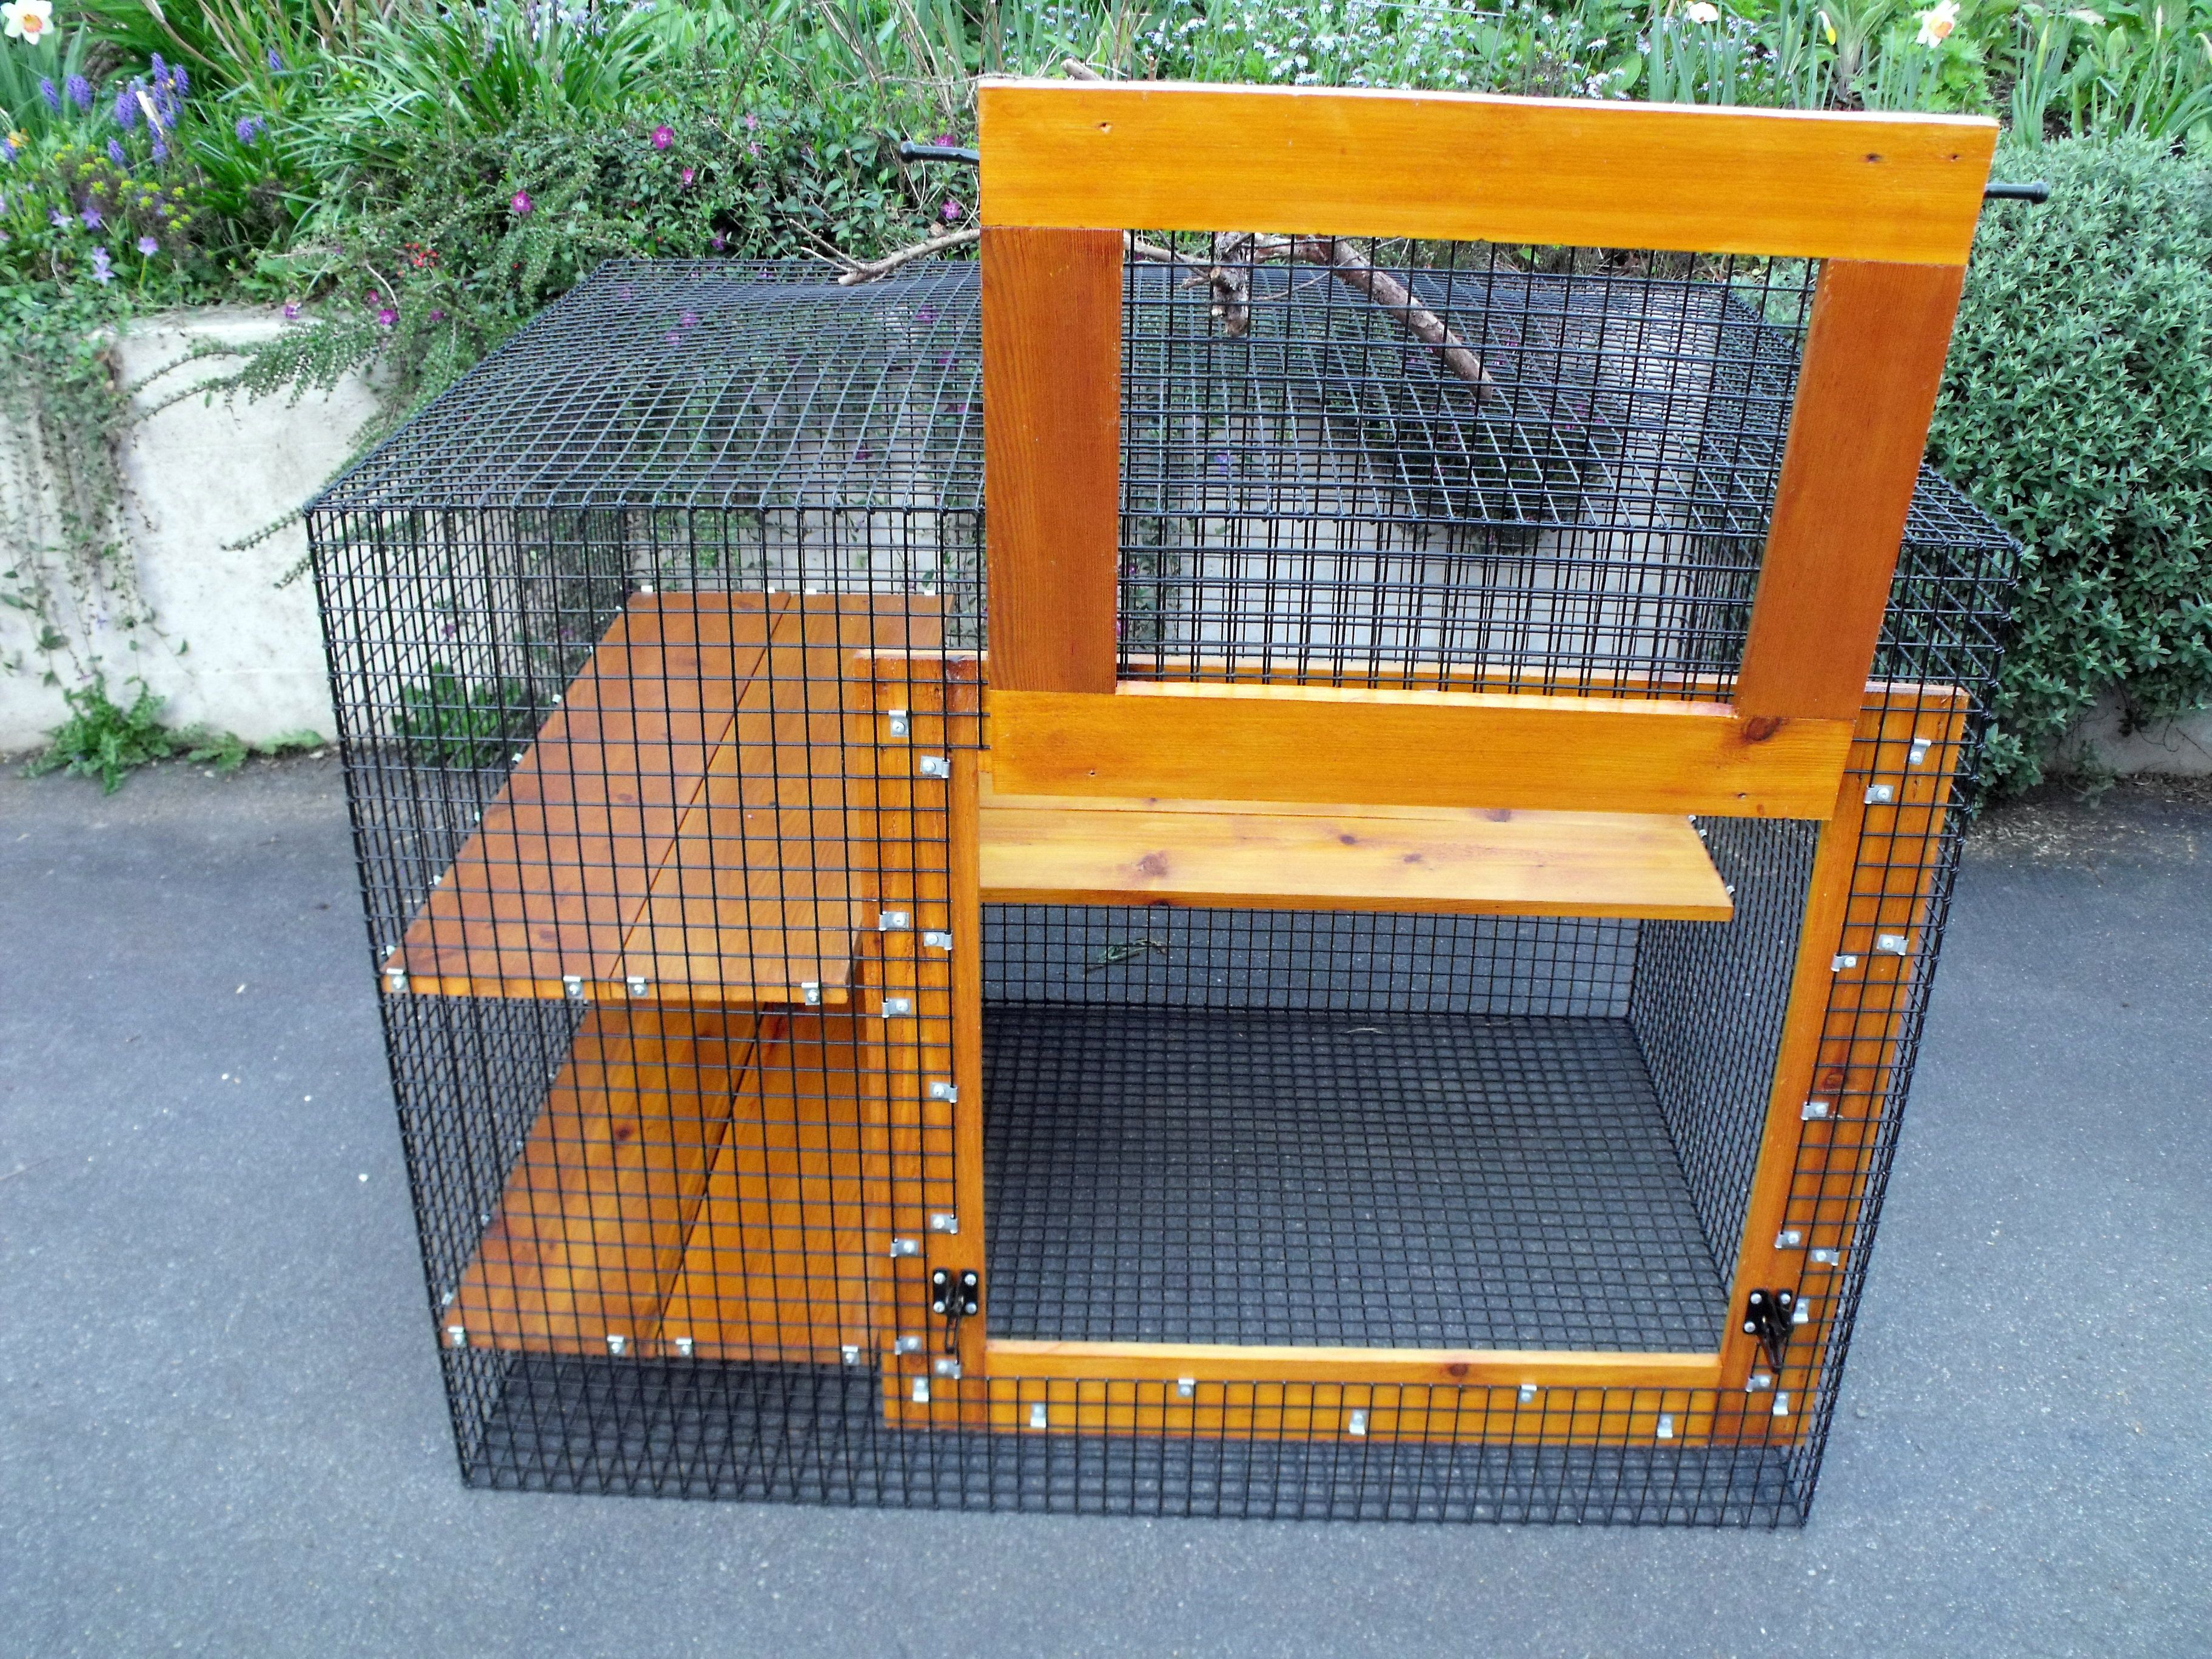 Portable Outdoor Dog Enclosures : Pin by john creviston on cat enclosures for other animals